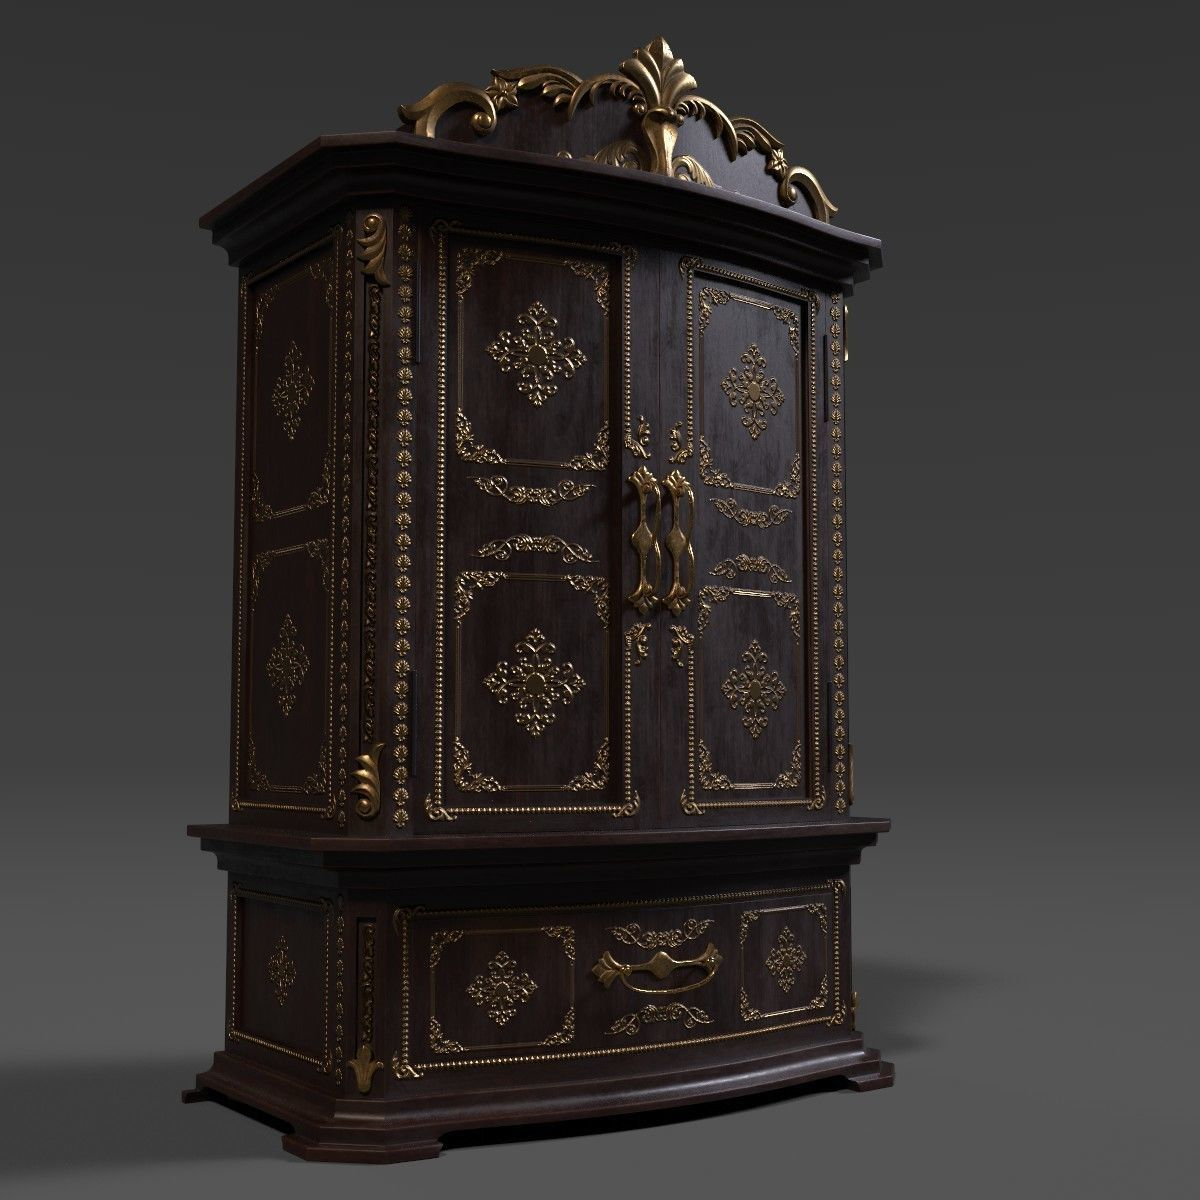 French Armoire - 6 versions